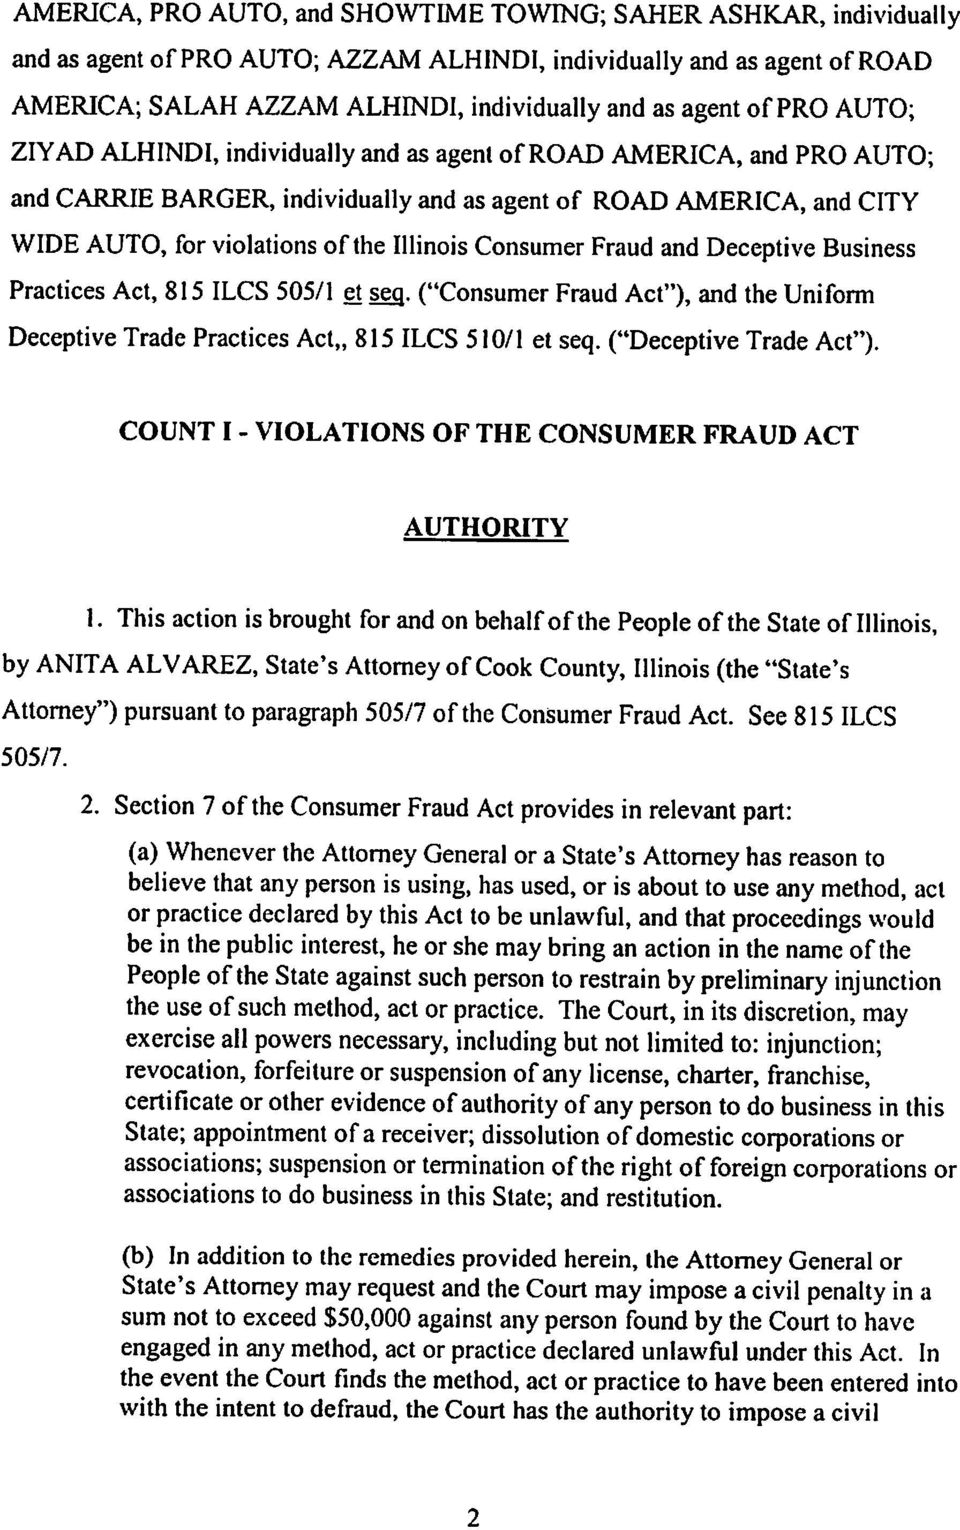 "Consumer Fraud and Deceptive Business Practices Act, 815 ILCS 505/1 et seg. (""Consumer Fraud Act""), and the Uniform Deceptive Trade Practices Act,, 815 ILCS 510/1 et seq. (""Deceptive Trade Act"")."